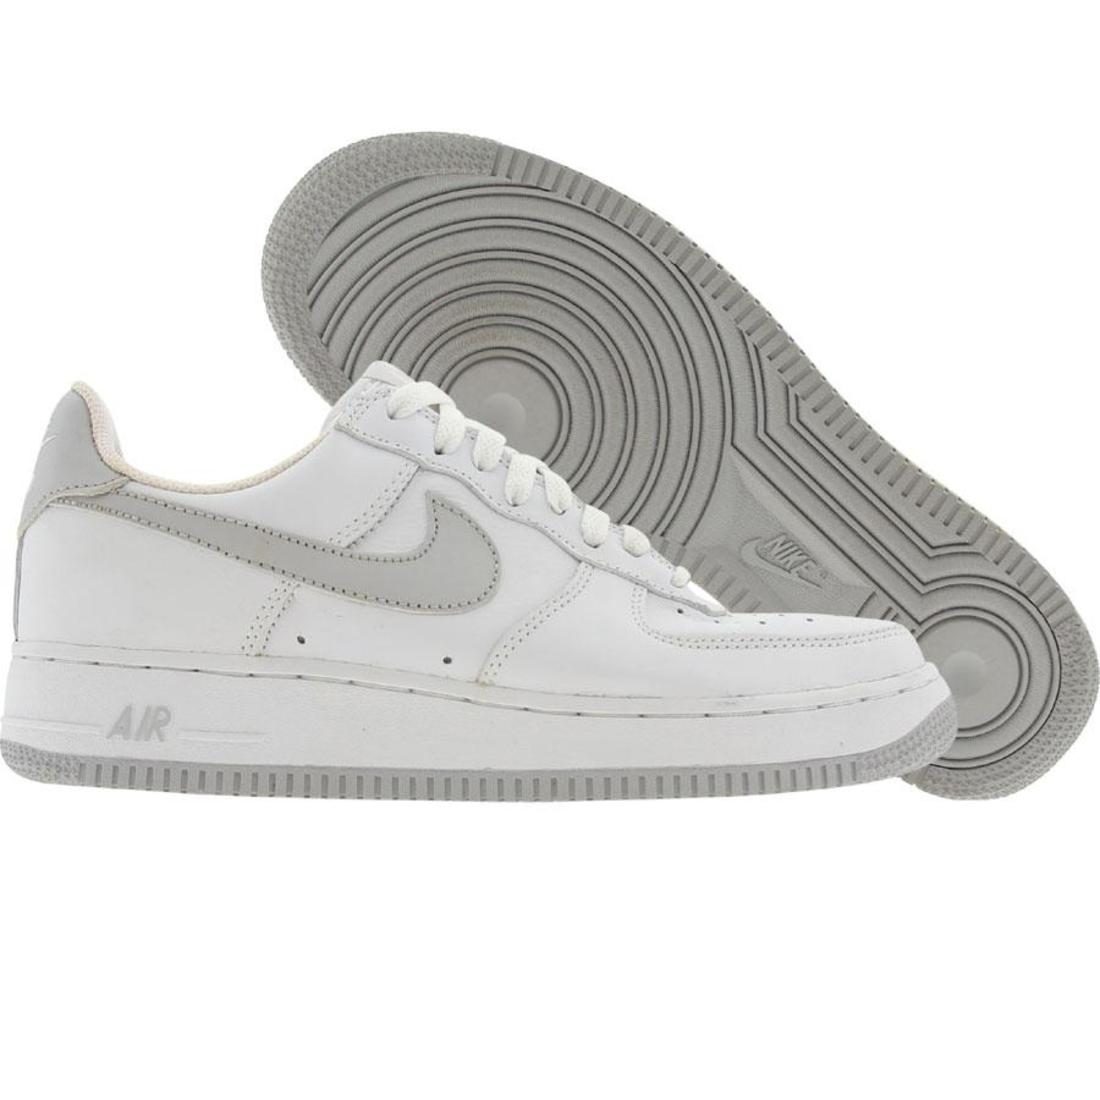 Cheap white nike shoes air force Buy Online >OFF30% Discounted